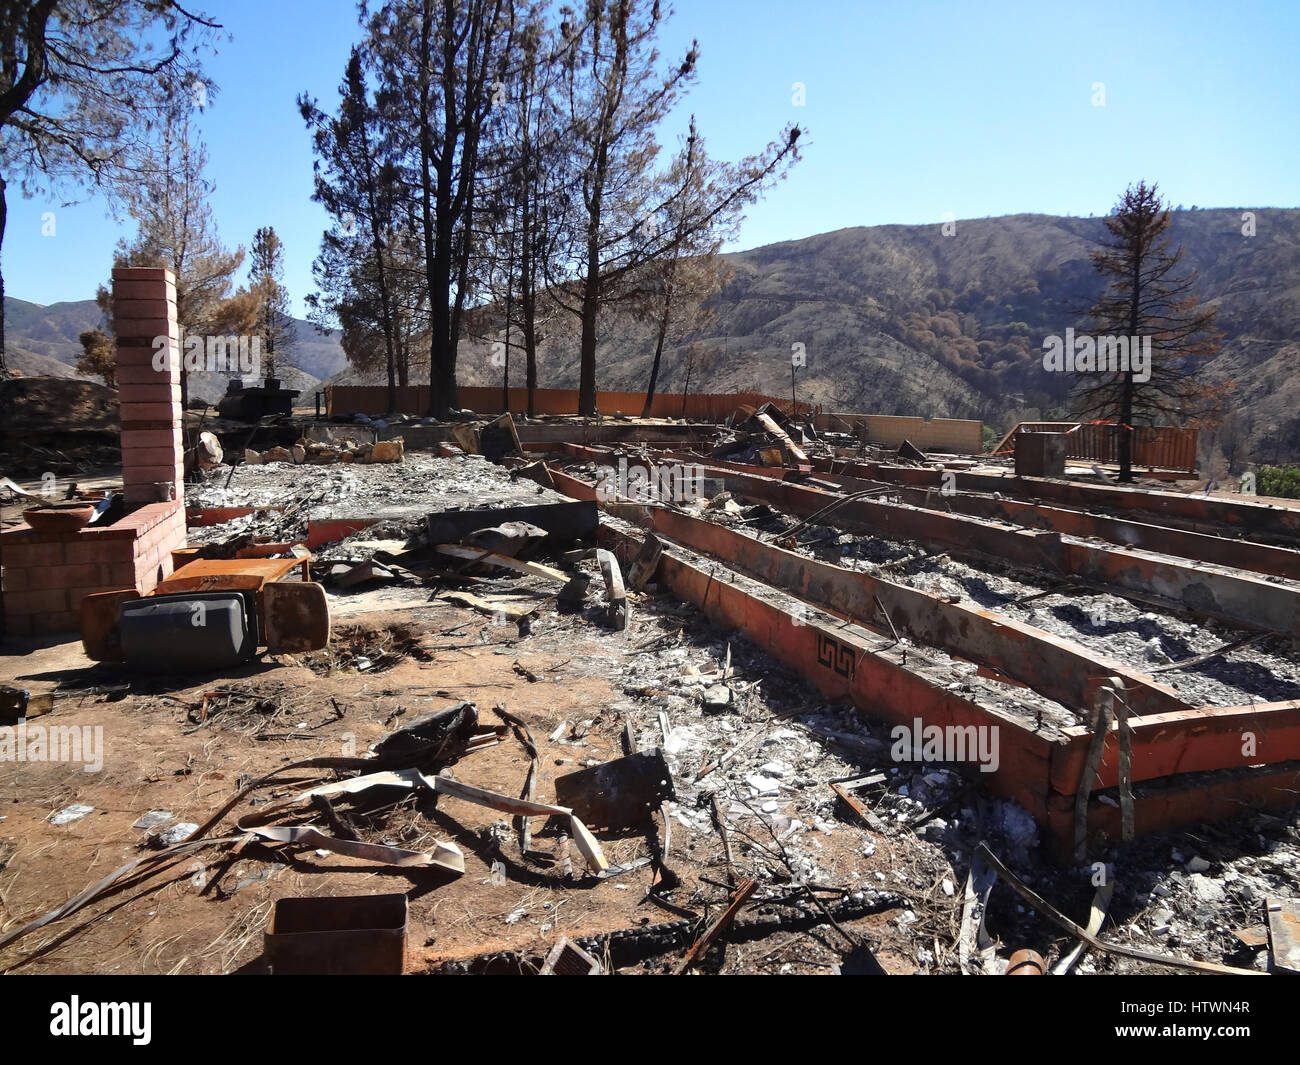 Burnt down house after wild fire - Stock Image